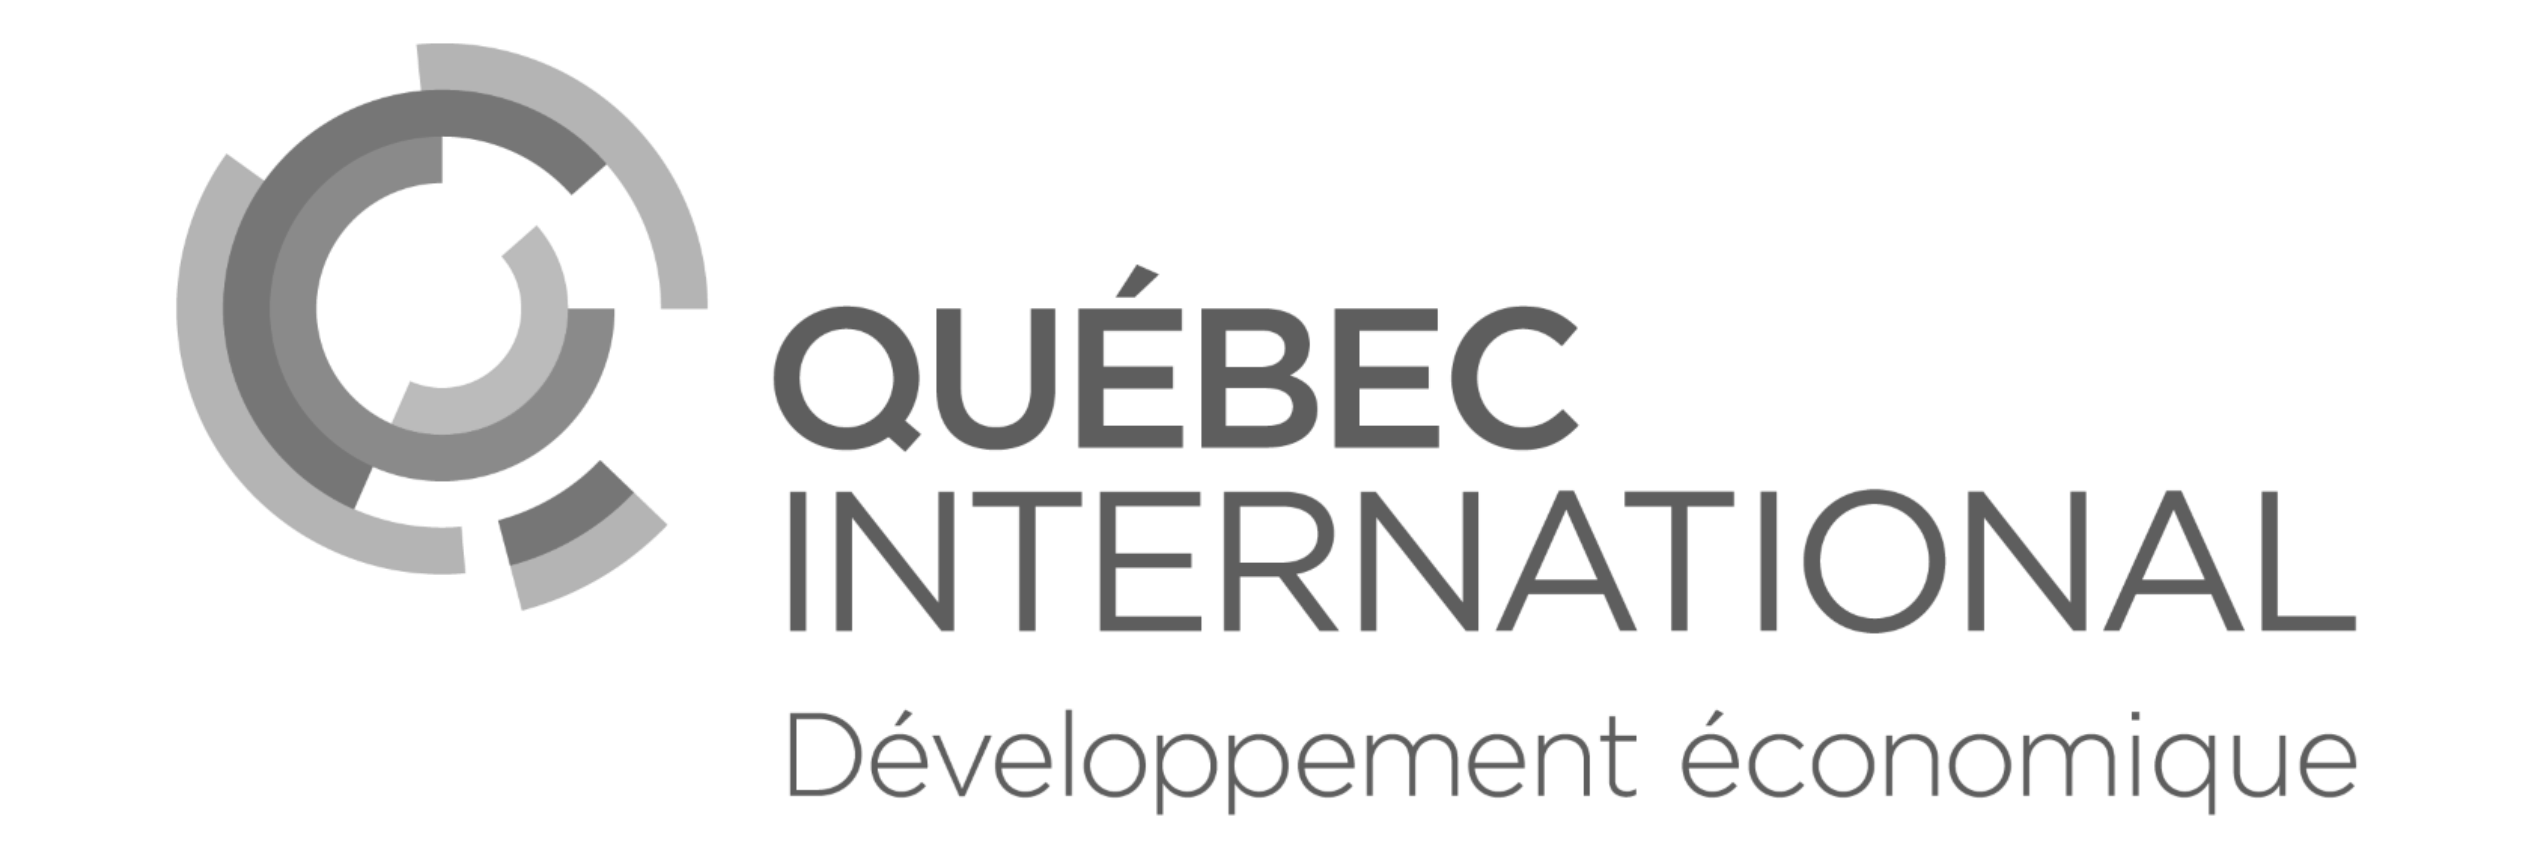 quebecinternational.ca